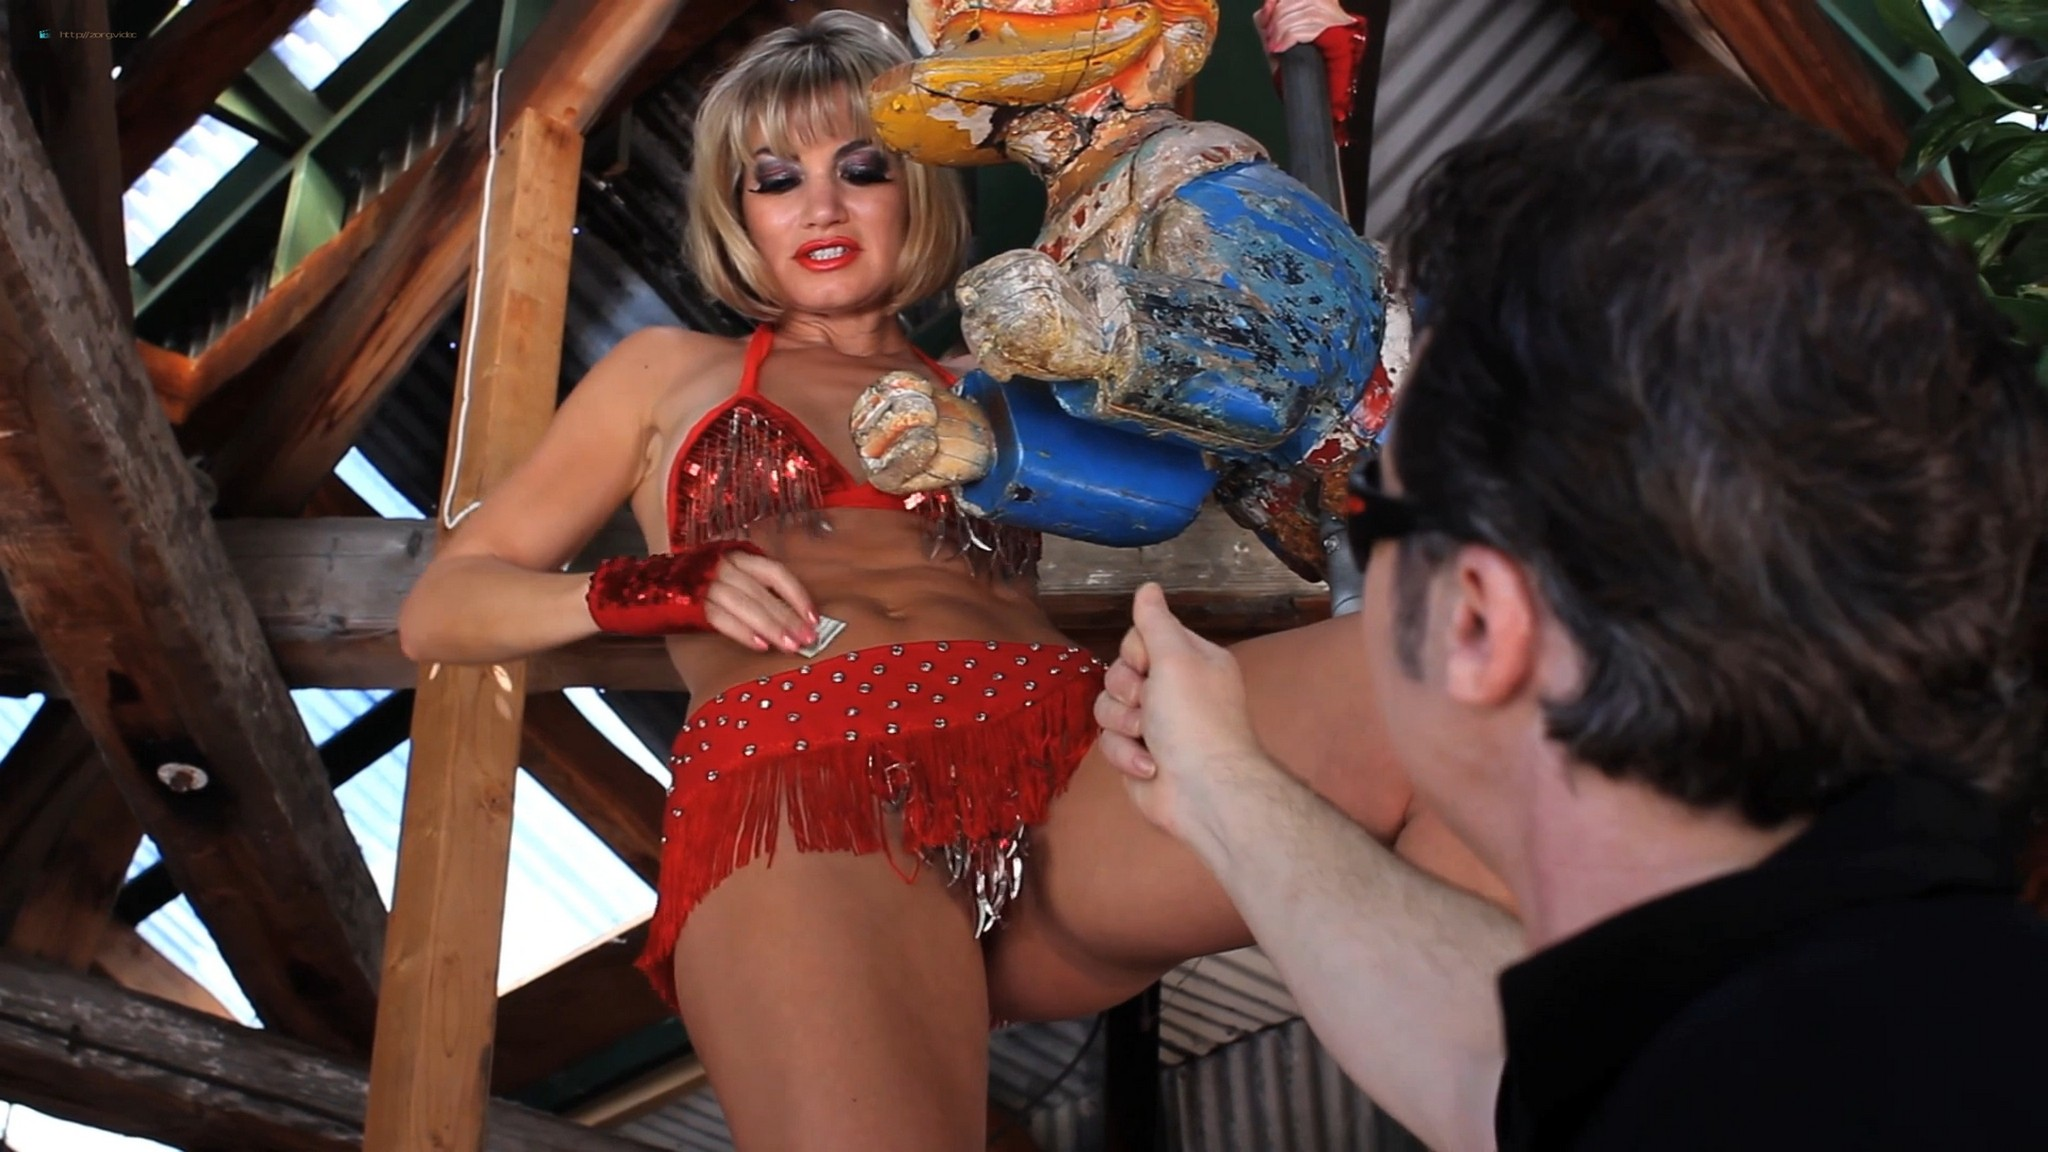 Rena Riffel nude topless - Showgirls 2: Penny's from Heaven (2011) HD 1080p Web (19)